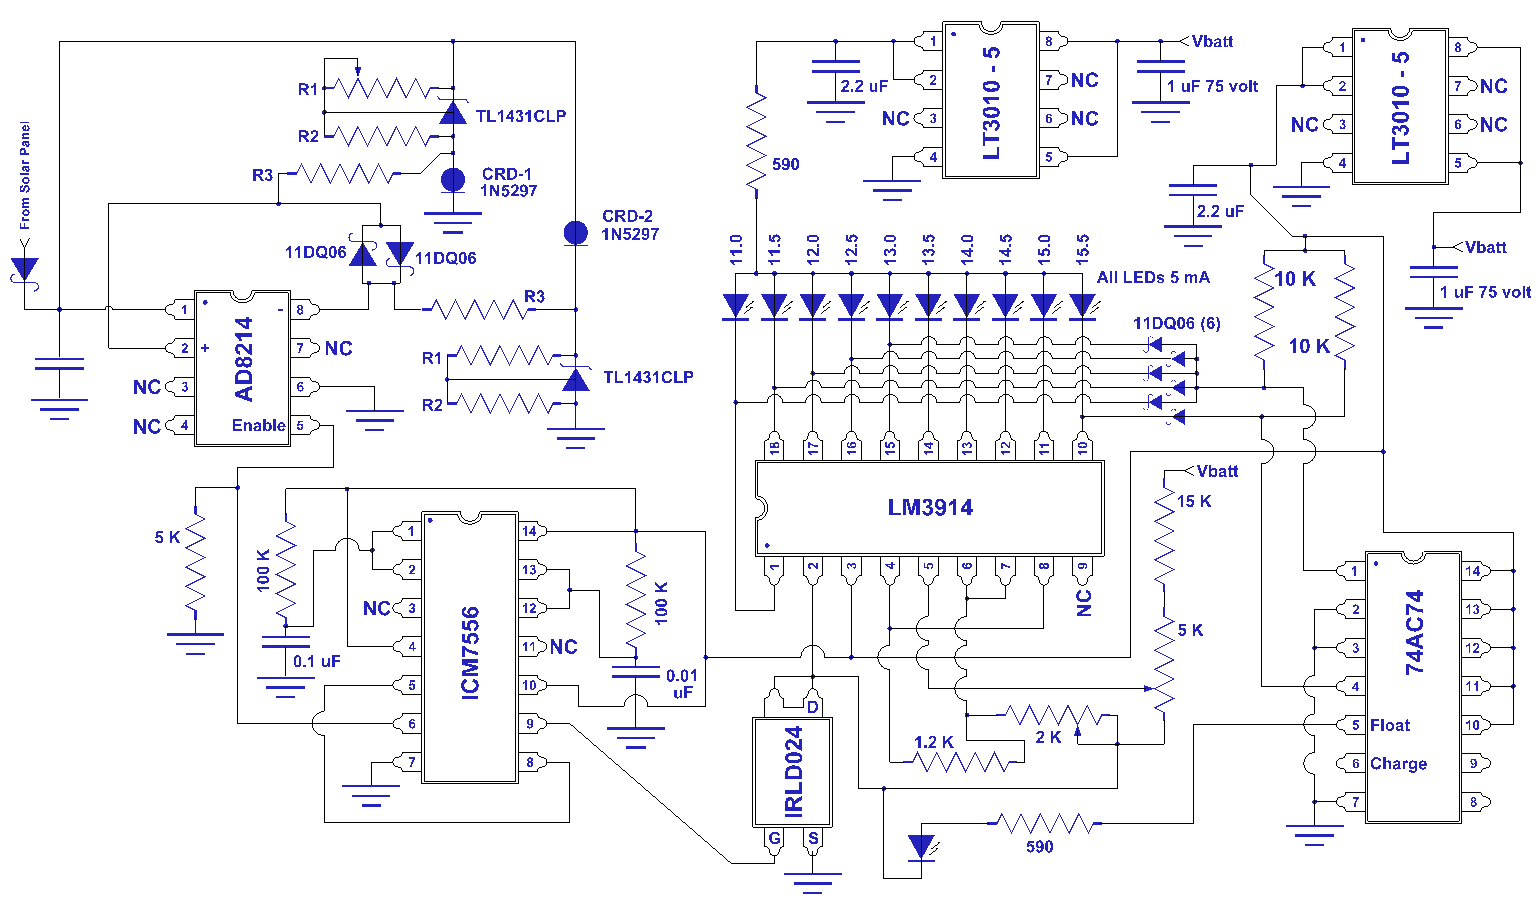 solar charge controller circuit diagram simple mppt solar rh pinterest com simple mppt solar charge controller circuit diagram charge controller circuit diagram pdf